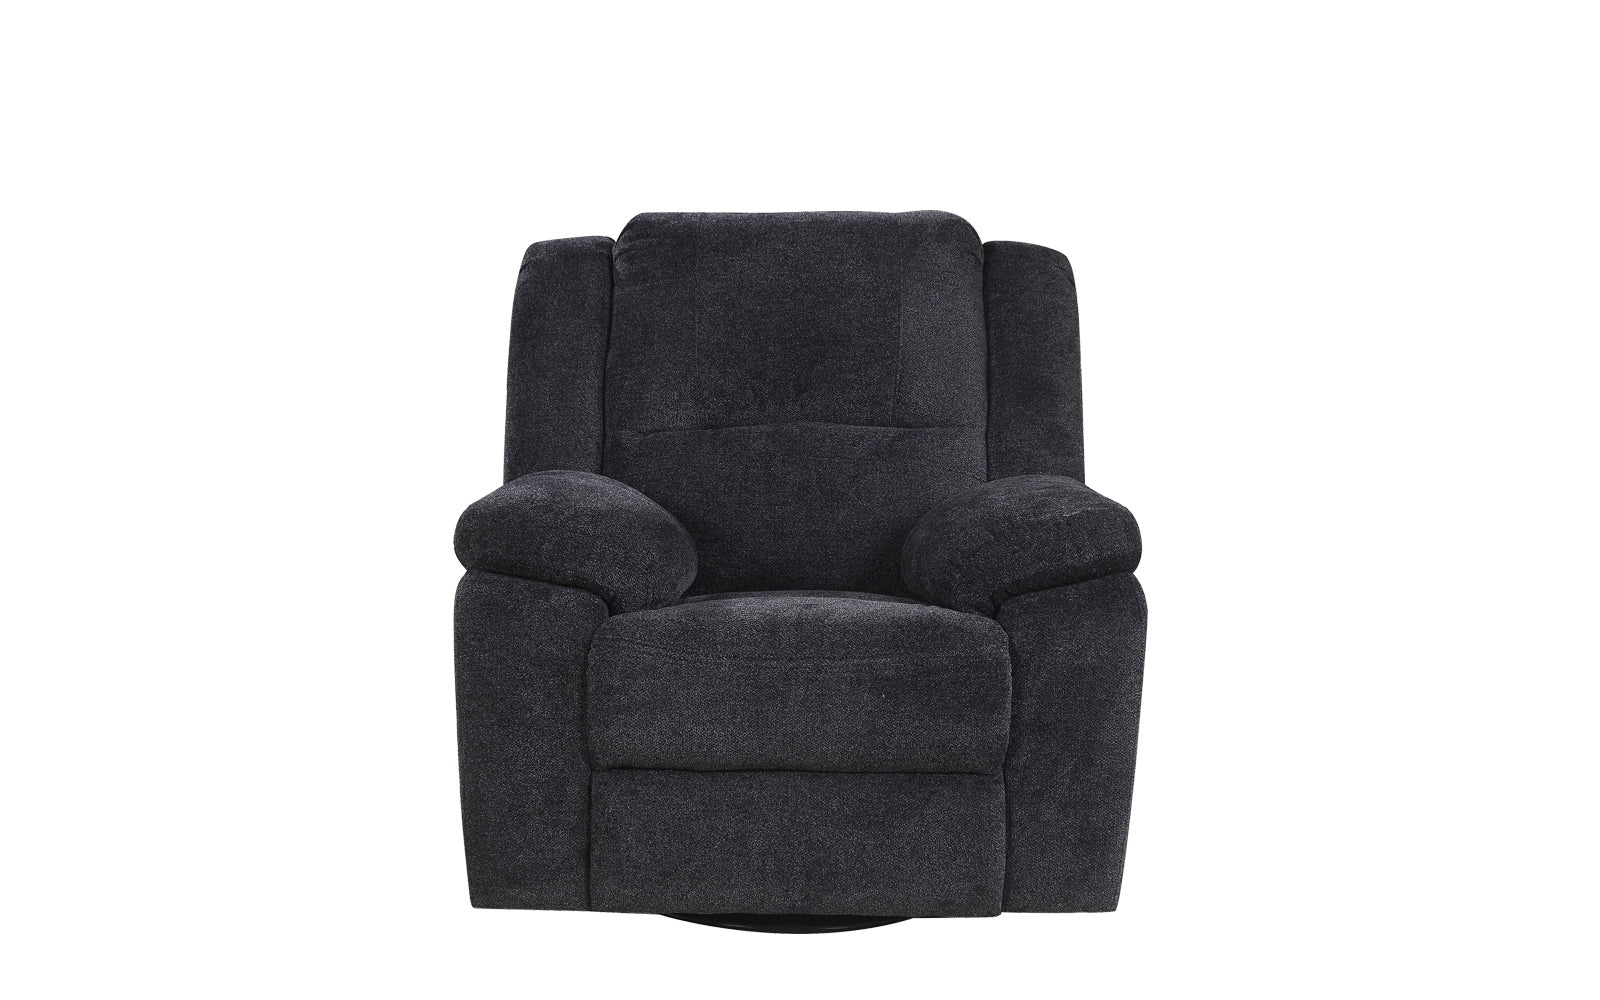 ... Asturias Traditional Classic Microfiber Rocker and Swivel Recliner Chair Dark Grey ...  sc 1 st  Sofamania & Asturias Traditional Classic Microfiber Rocker and Swivel Recliner ... islam-shia.org